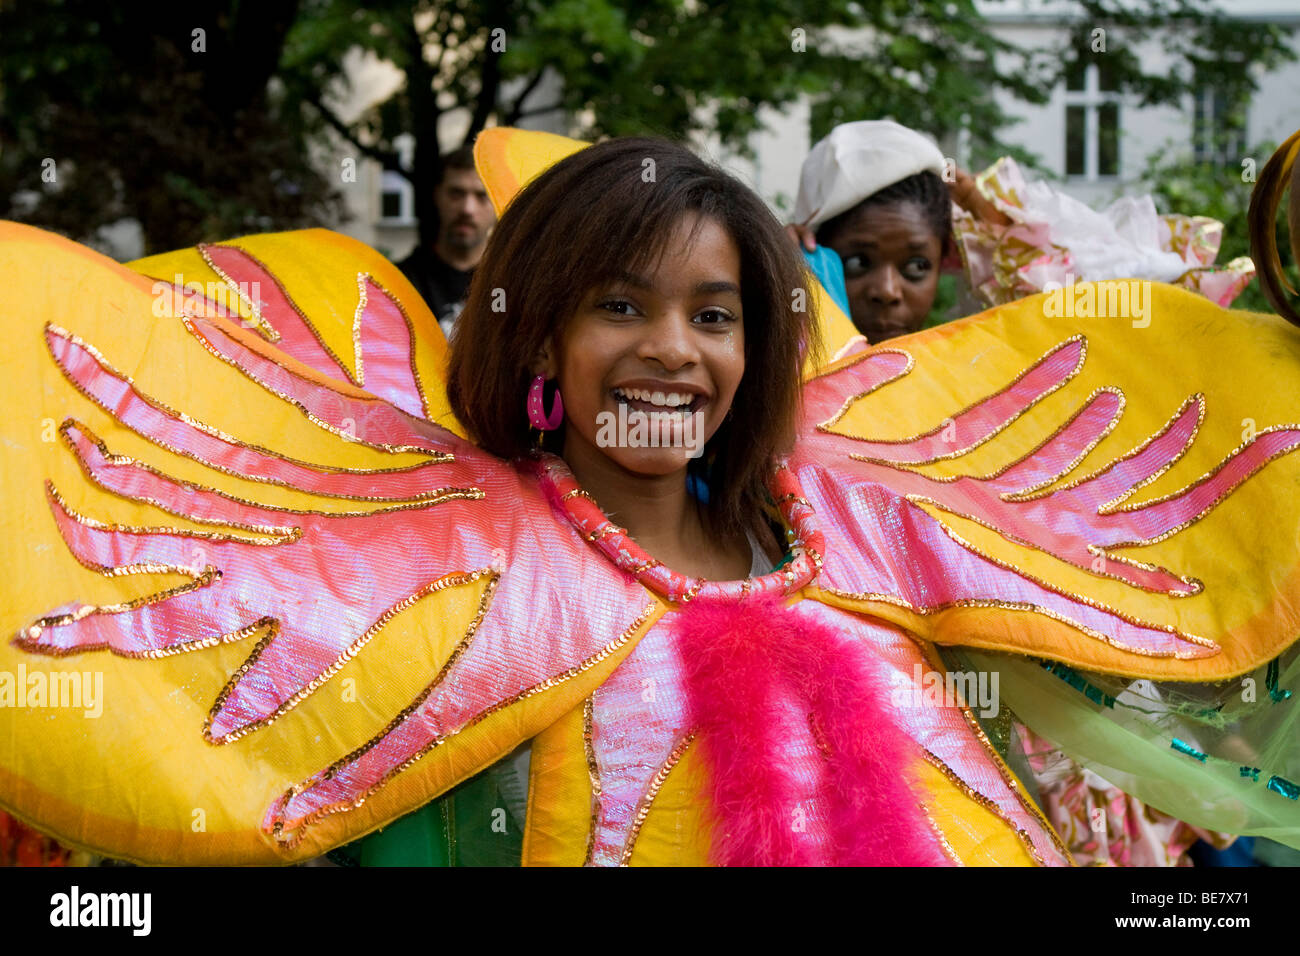 Jeune femme, groupe Amasonia, Carnaval des Cultures 2009, Berlin, Germany, Europe Photo Stock